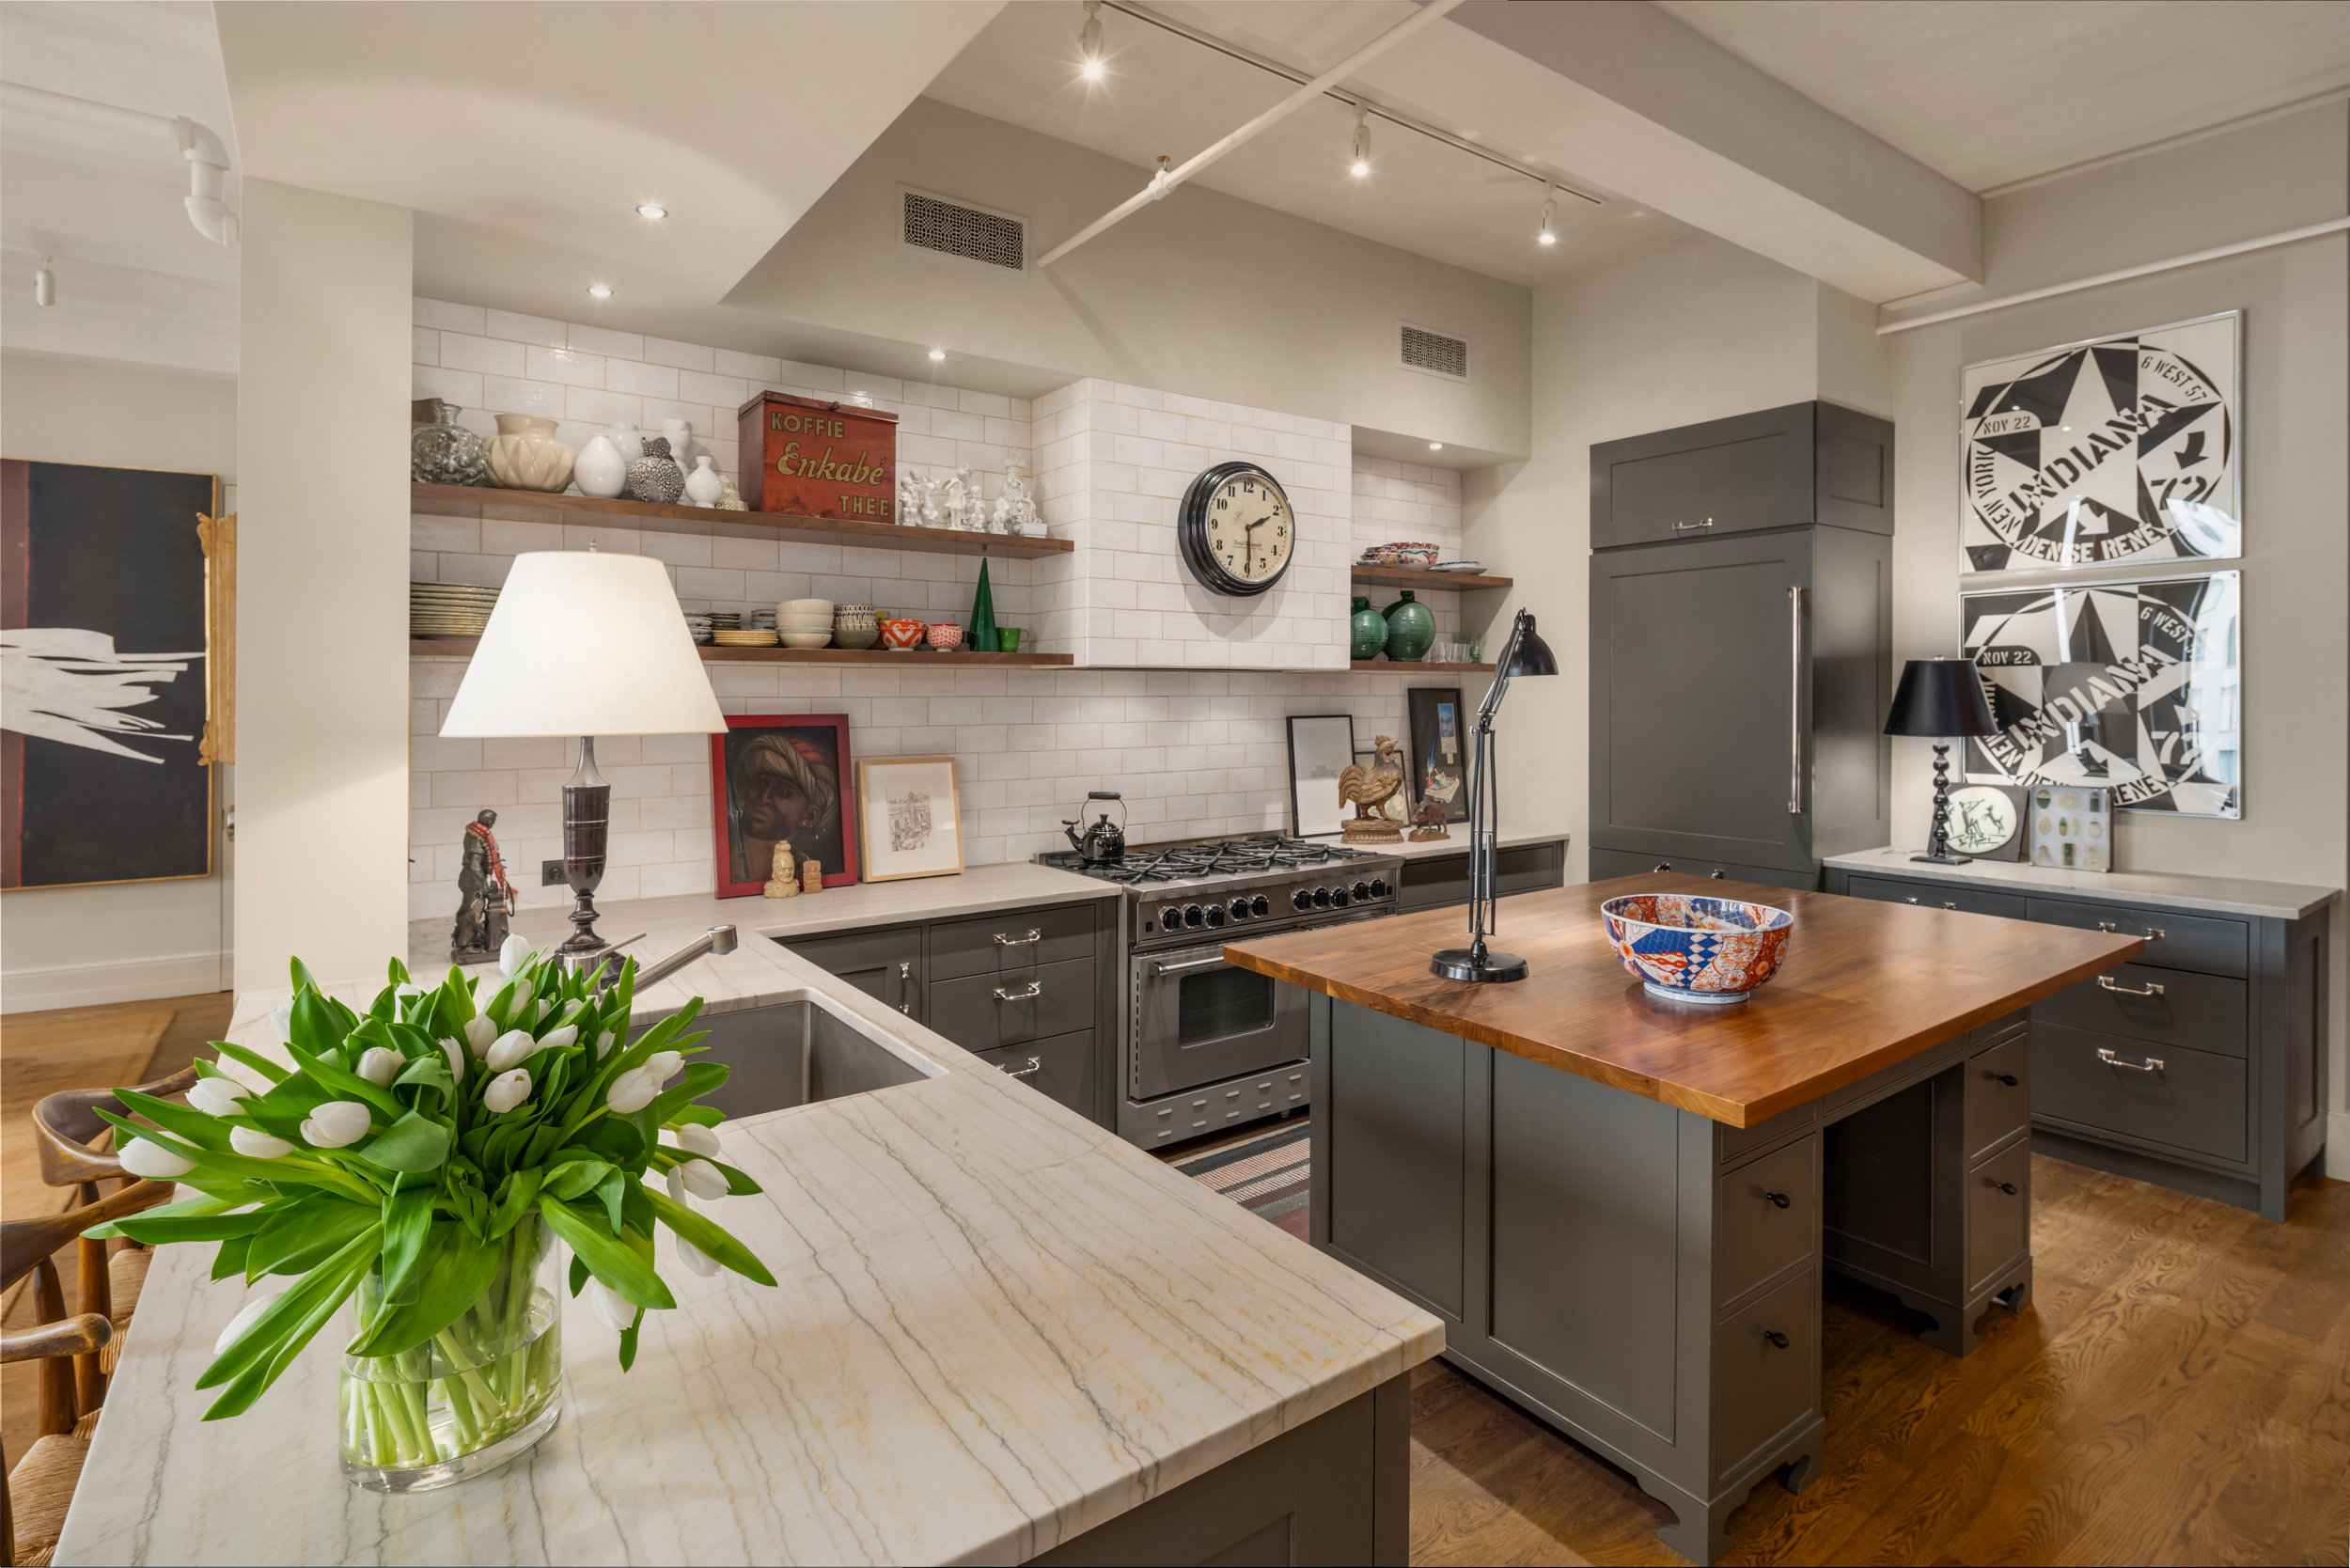 142West26thStreet9-ChelseaNewYork_Holly_Parker_DouglasElliman_Photography_79379441_high_res.jpg